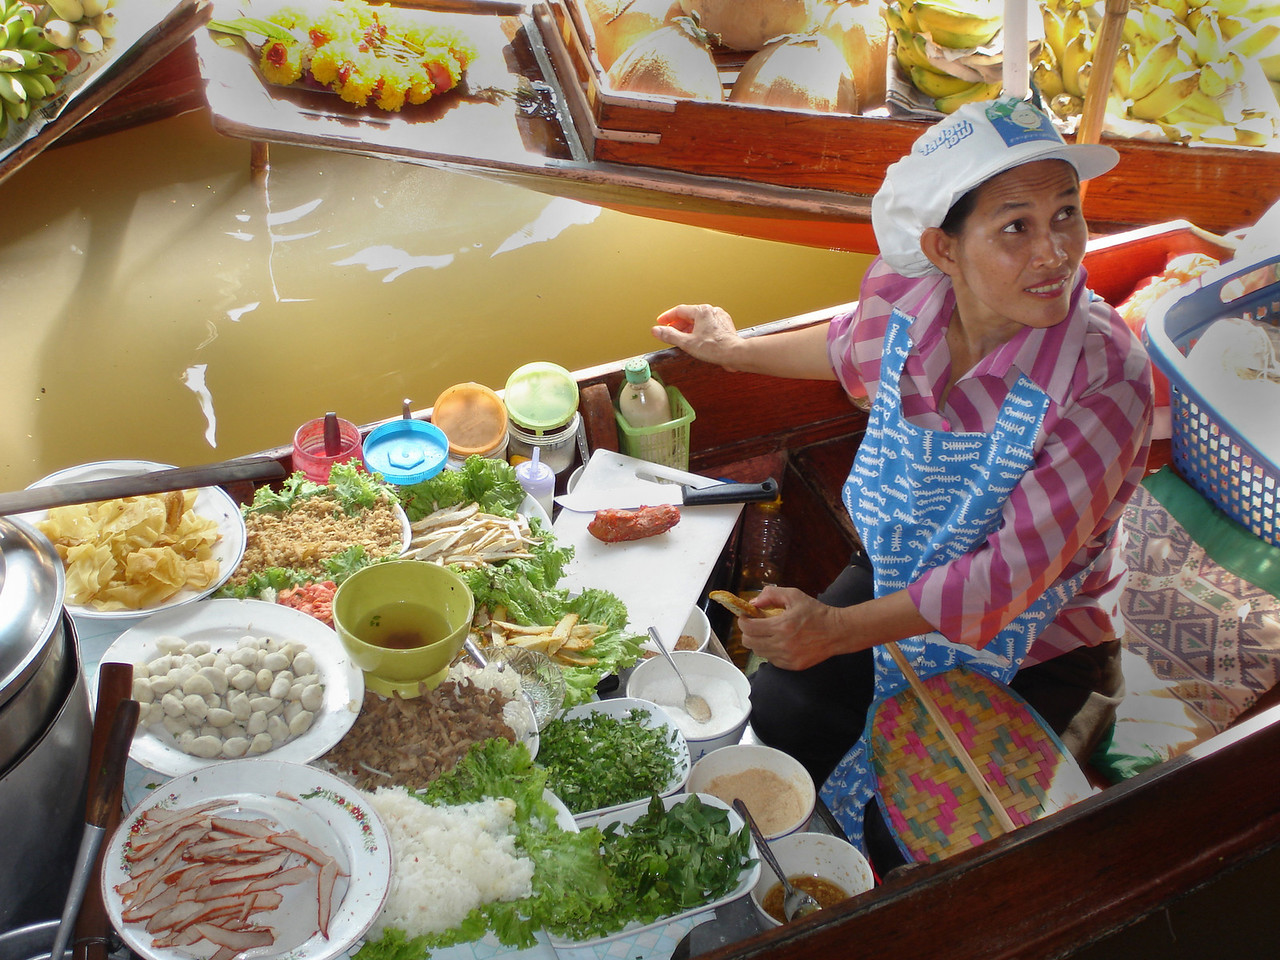 A Thai woman sells piping hot noodle soups from her small flat boat at one of the klongs (canals) at the famous floating market at Damnoen Saduak, west of Bangkok, Thailand